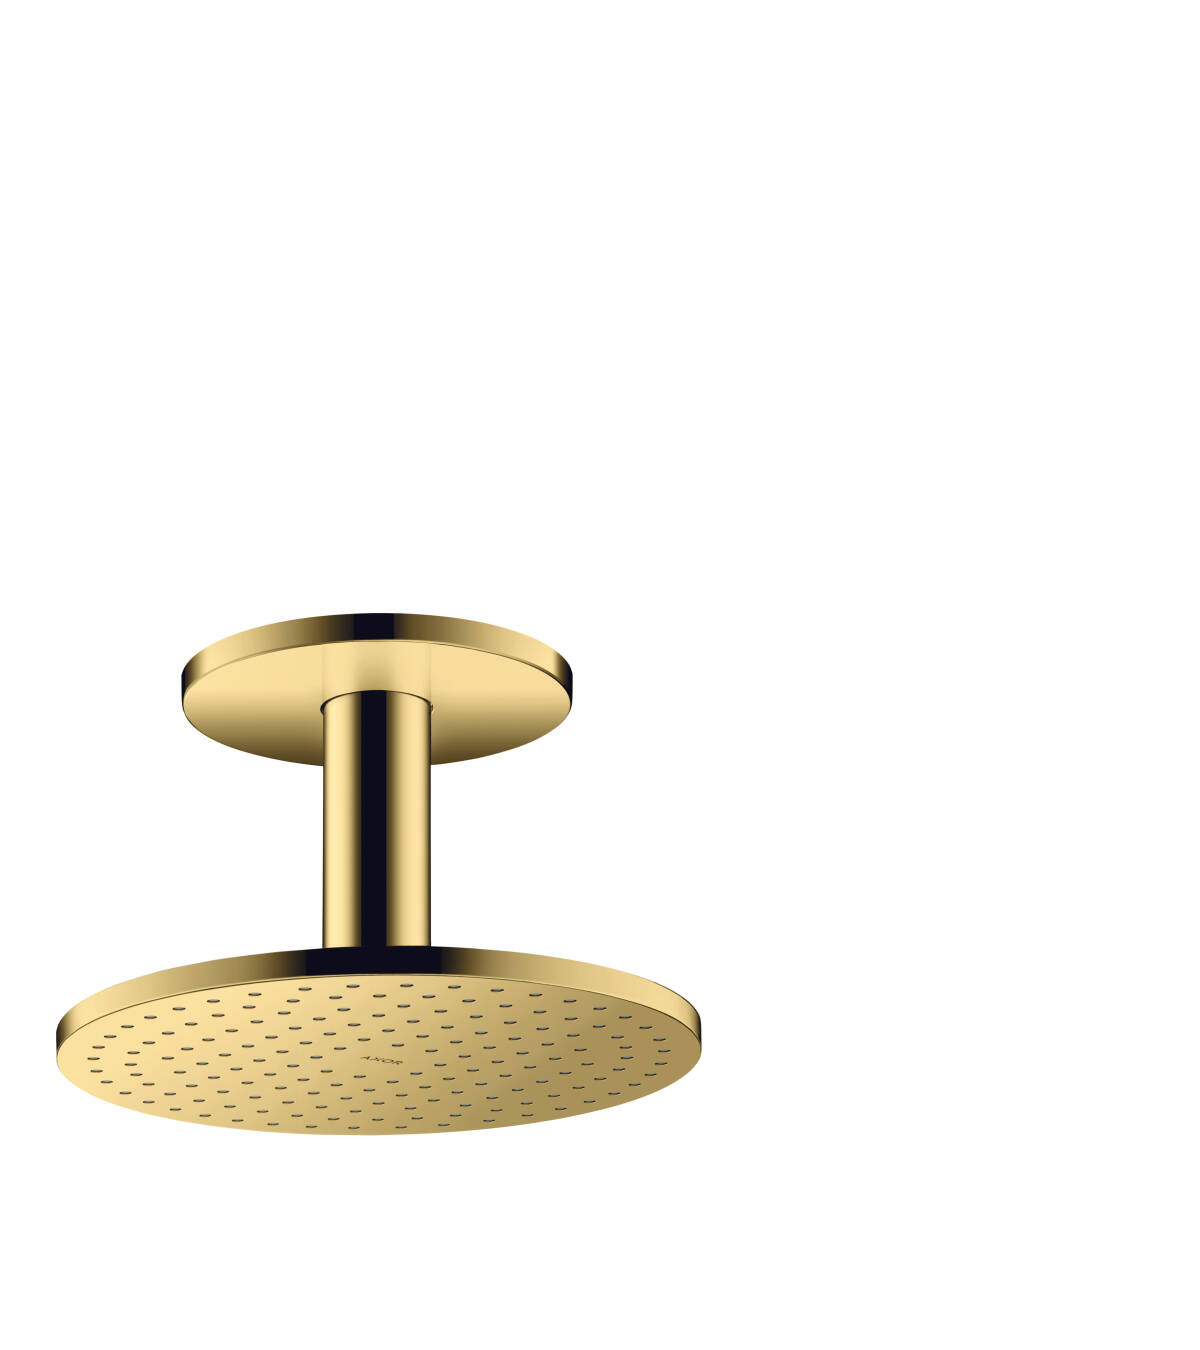 Overhead shower 250 1jet with ceiling connection, Polished Gold Optic, 35286990